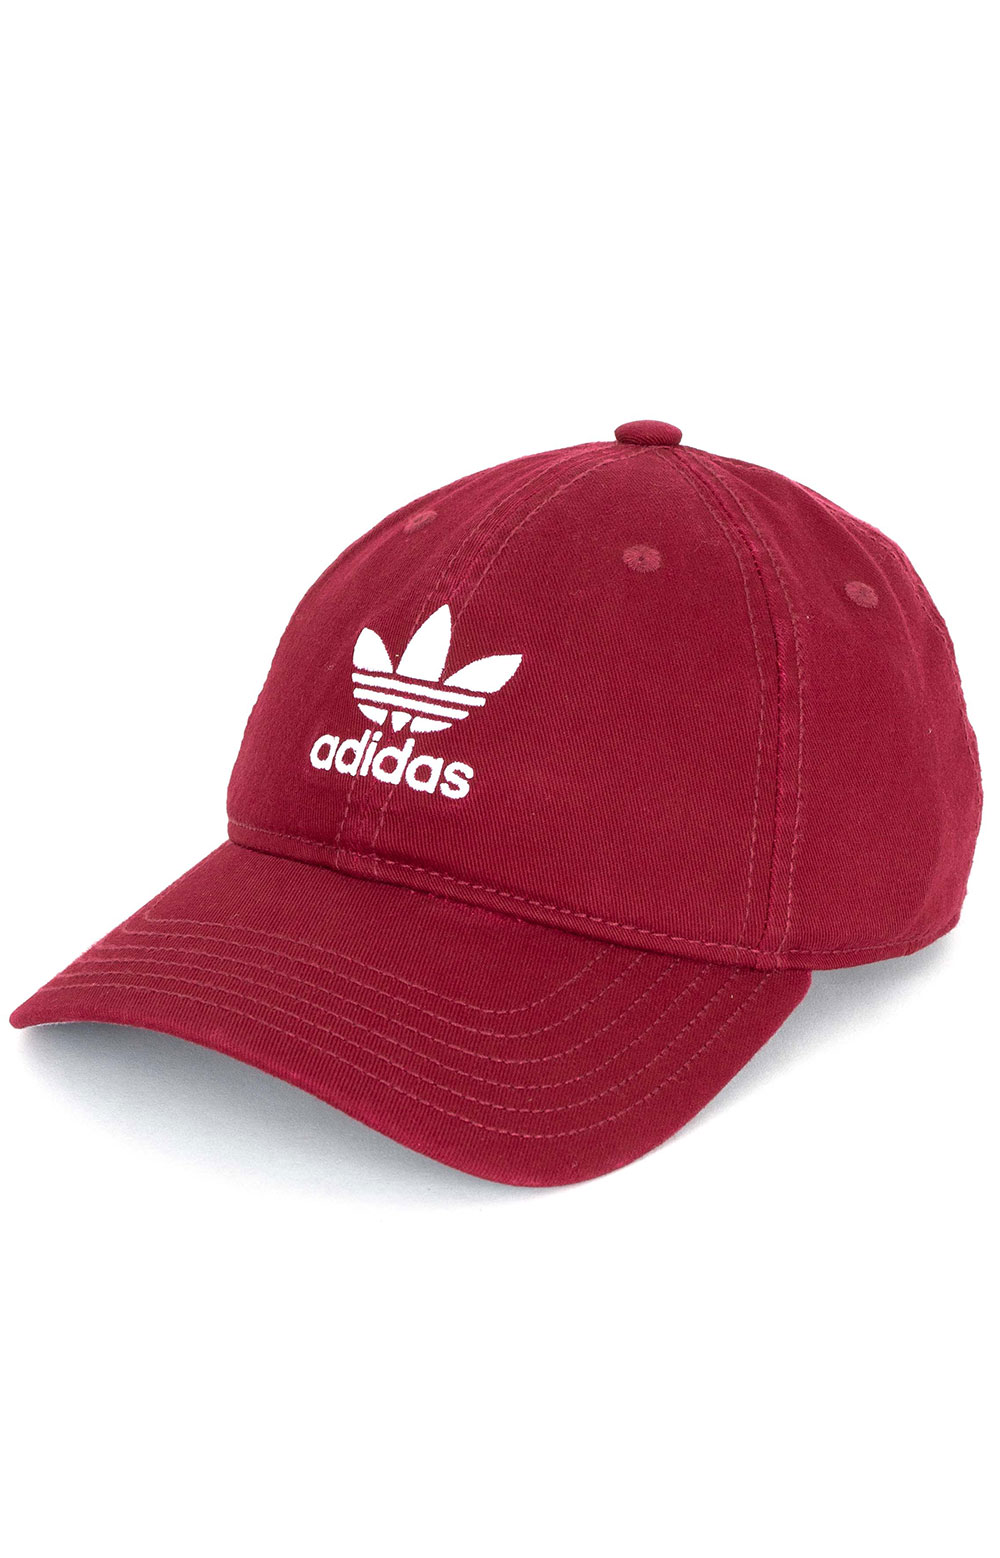 Relaxed Strap-Back Hat - Collegiate Burgundy/White